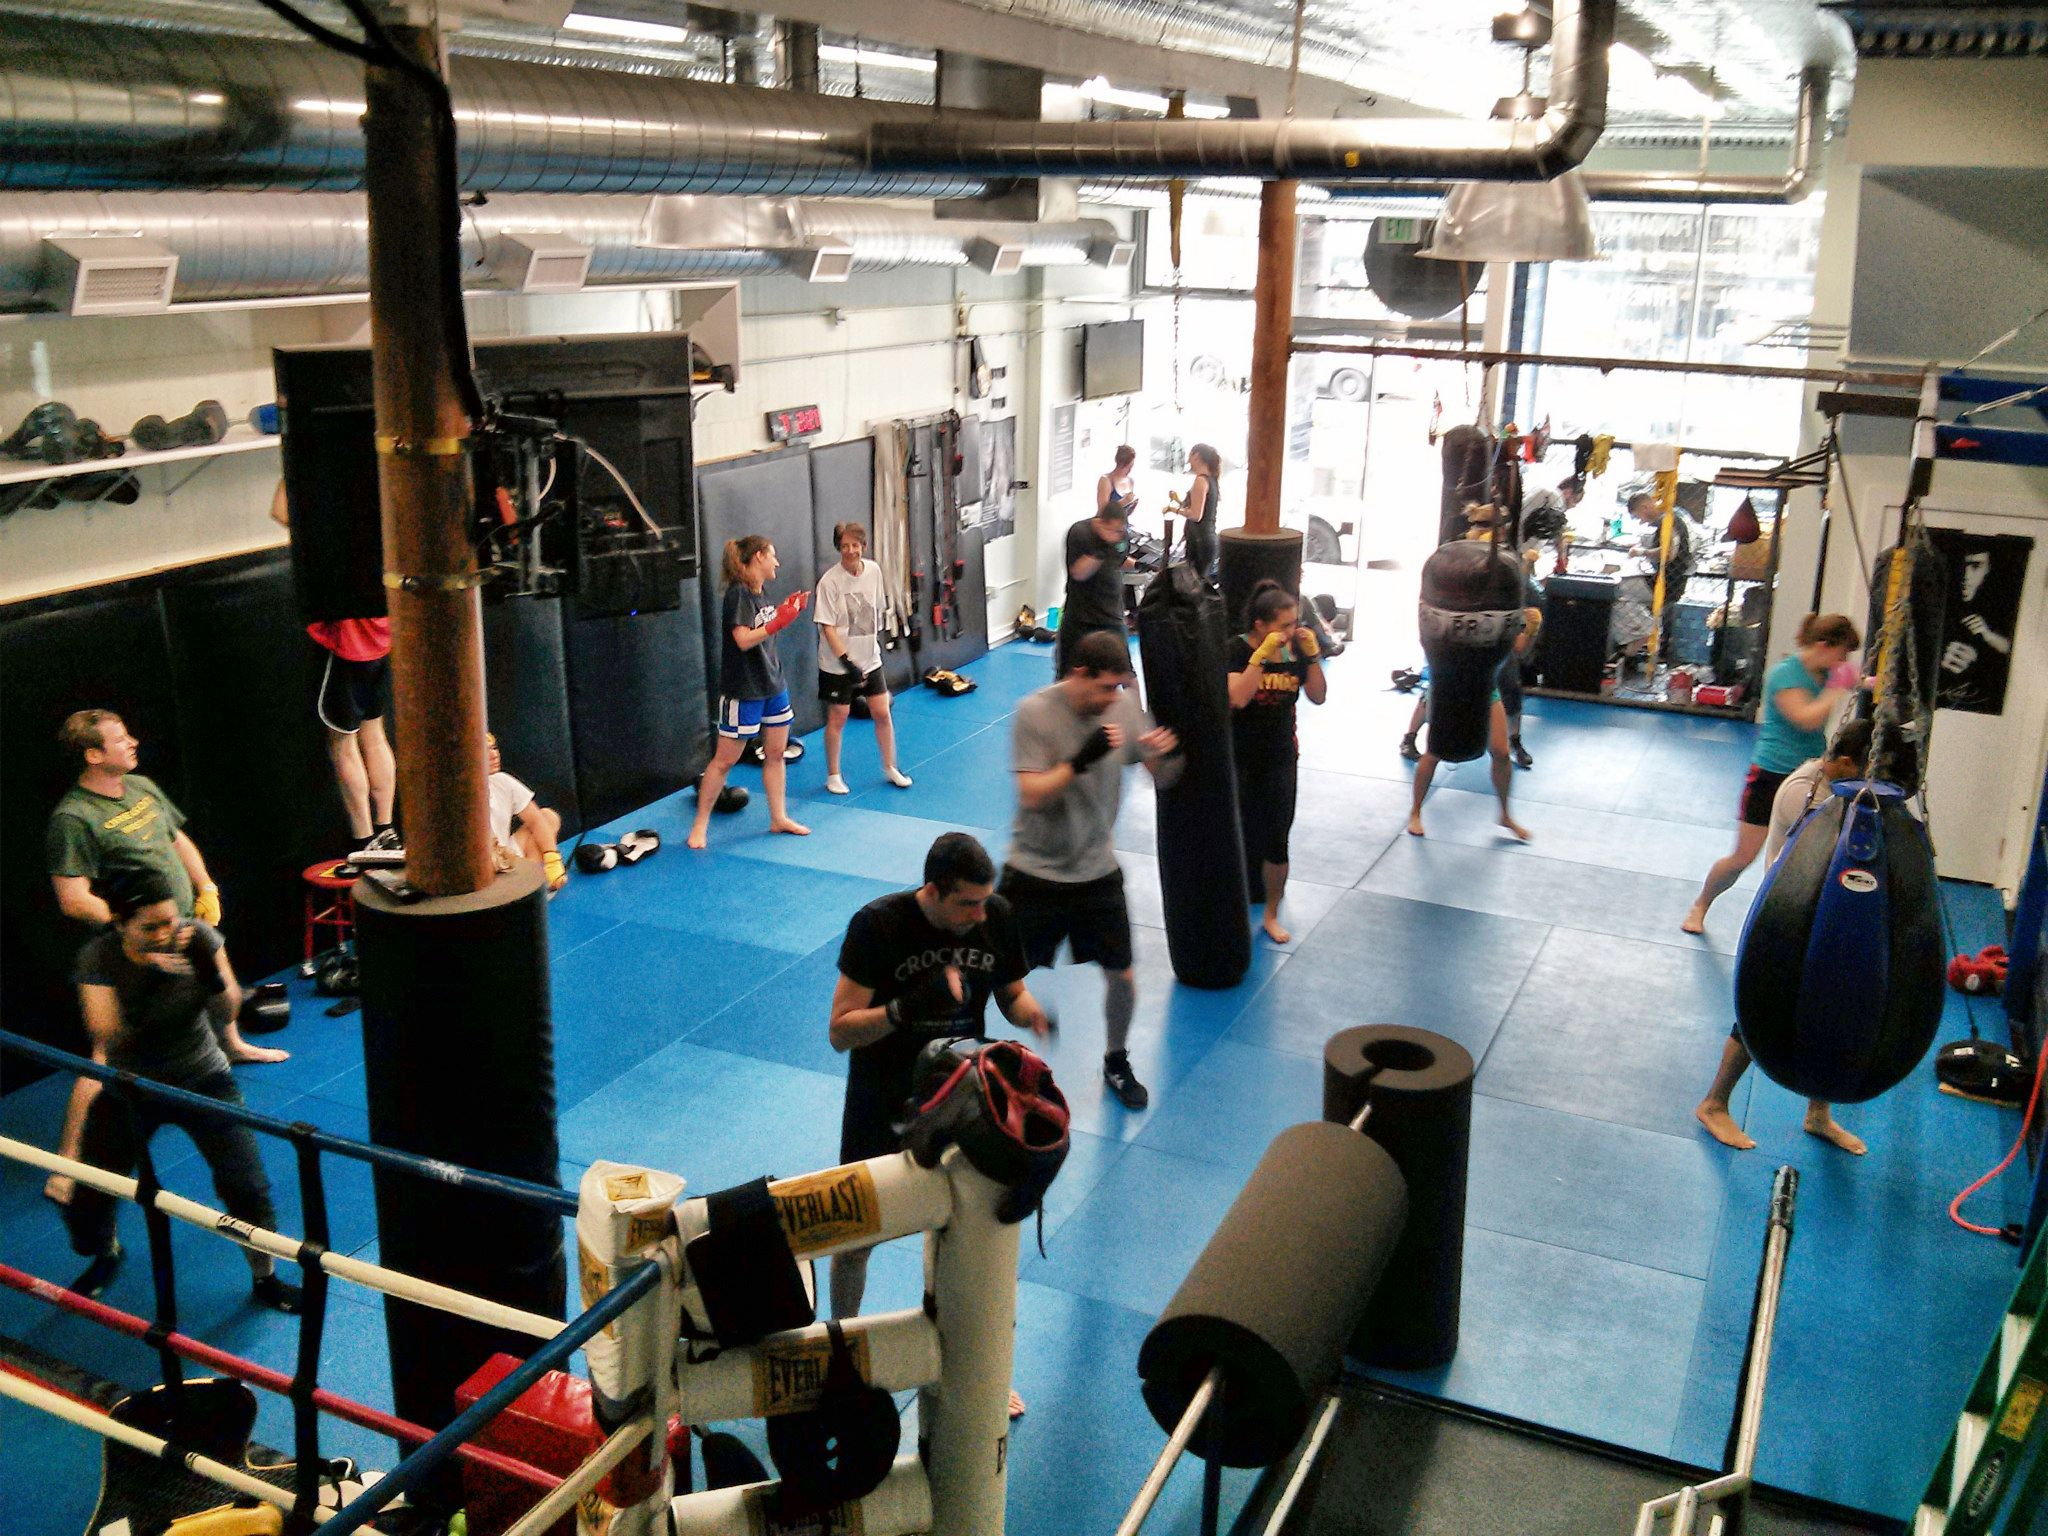 Hybrid Training SF.   Regulars rave about the boxing bootcamp at Hybrid. Instruction is top-notch, and the studio even offers a boxing yoga class. If you're interested in fighting beyond the ring, they also have a number of mixed martial arts classes.